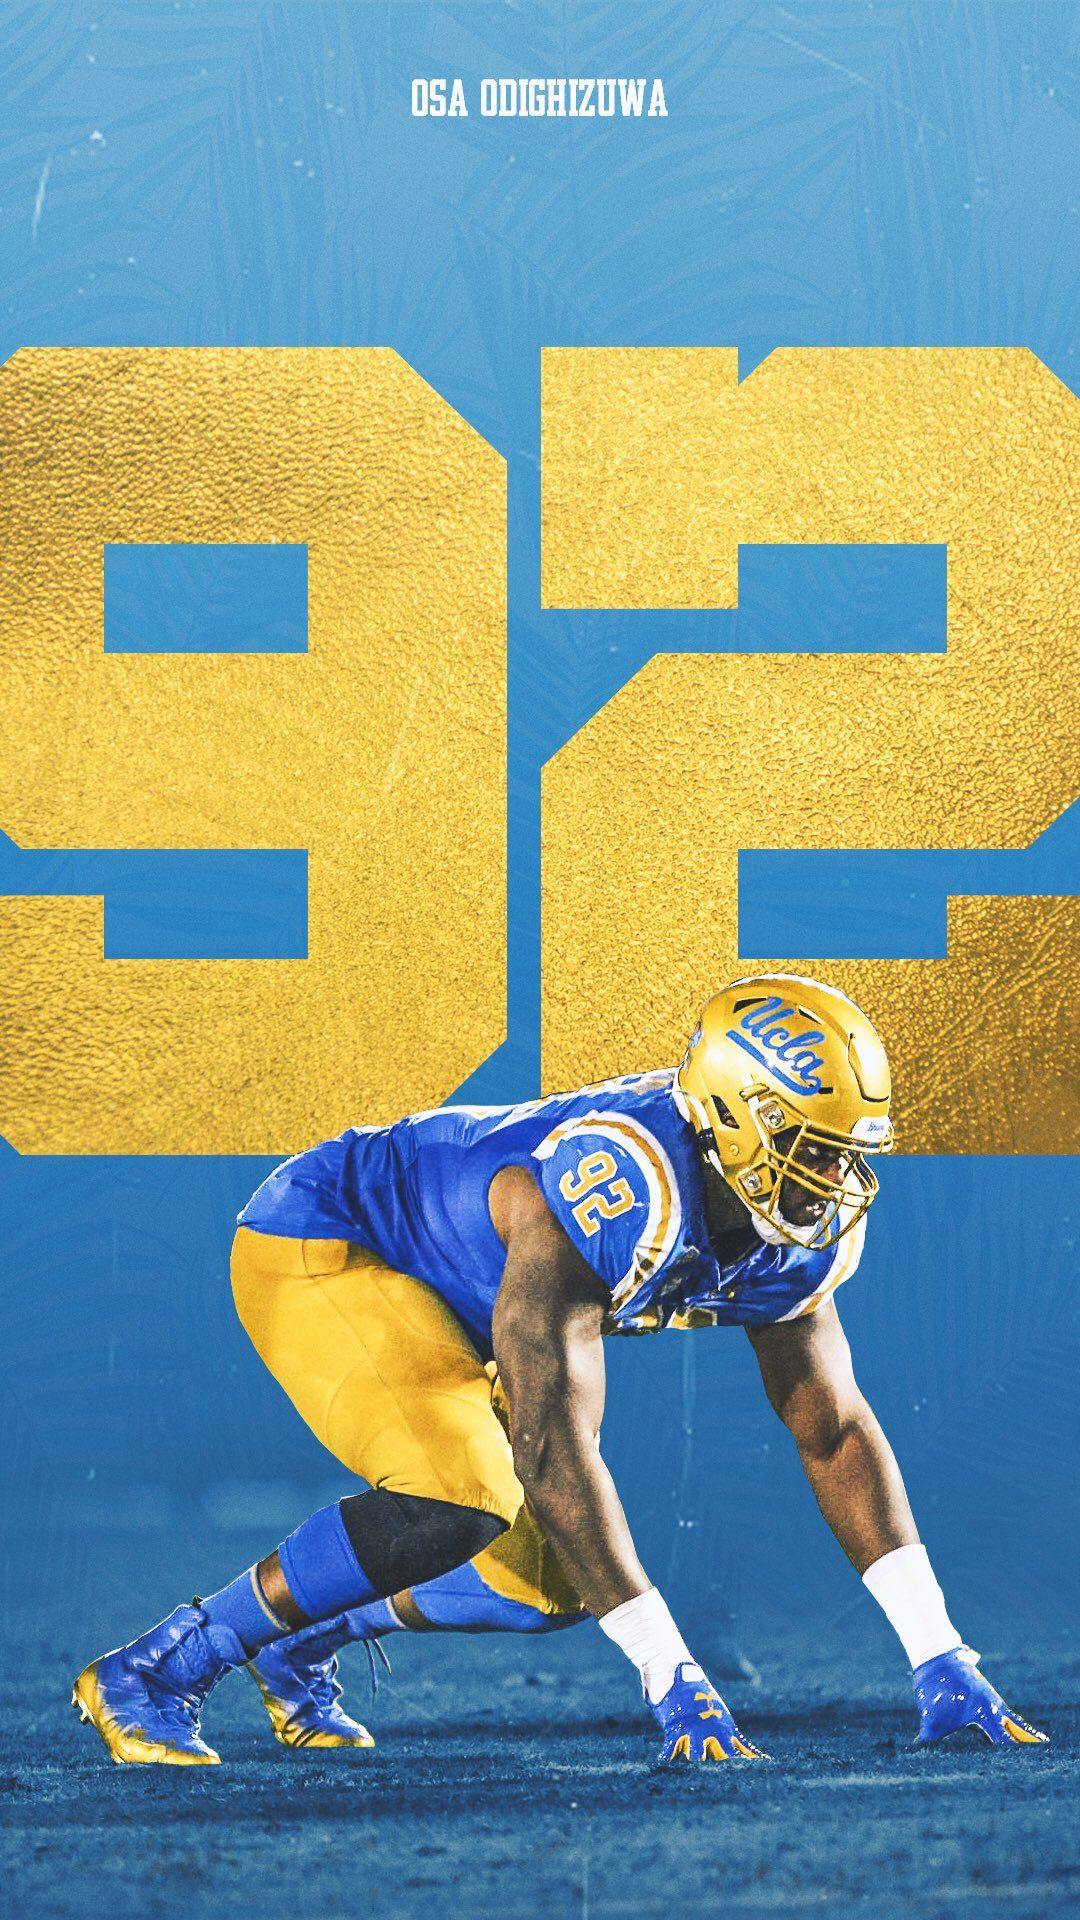 Pin By Skullsparks On Wallpapers Lock Screens In 2020 Ucla Sports Graphics Sports Design